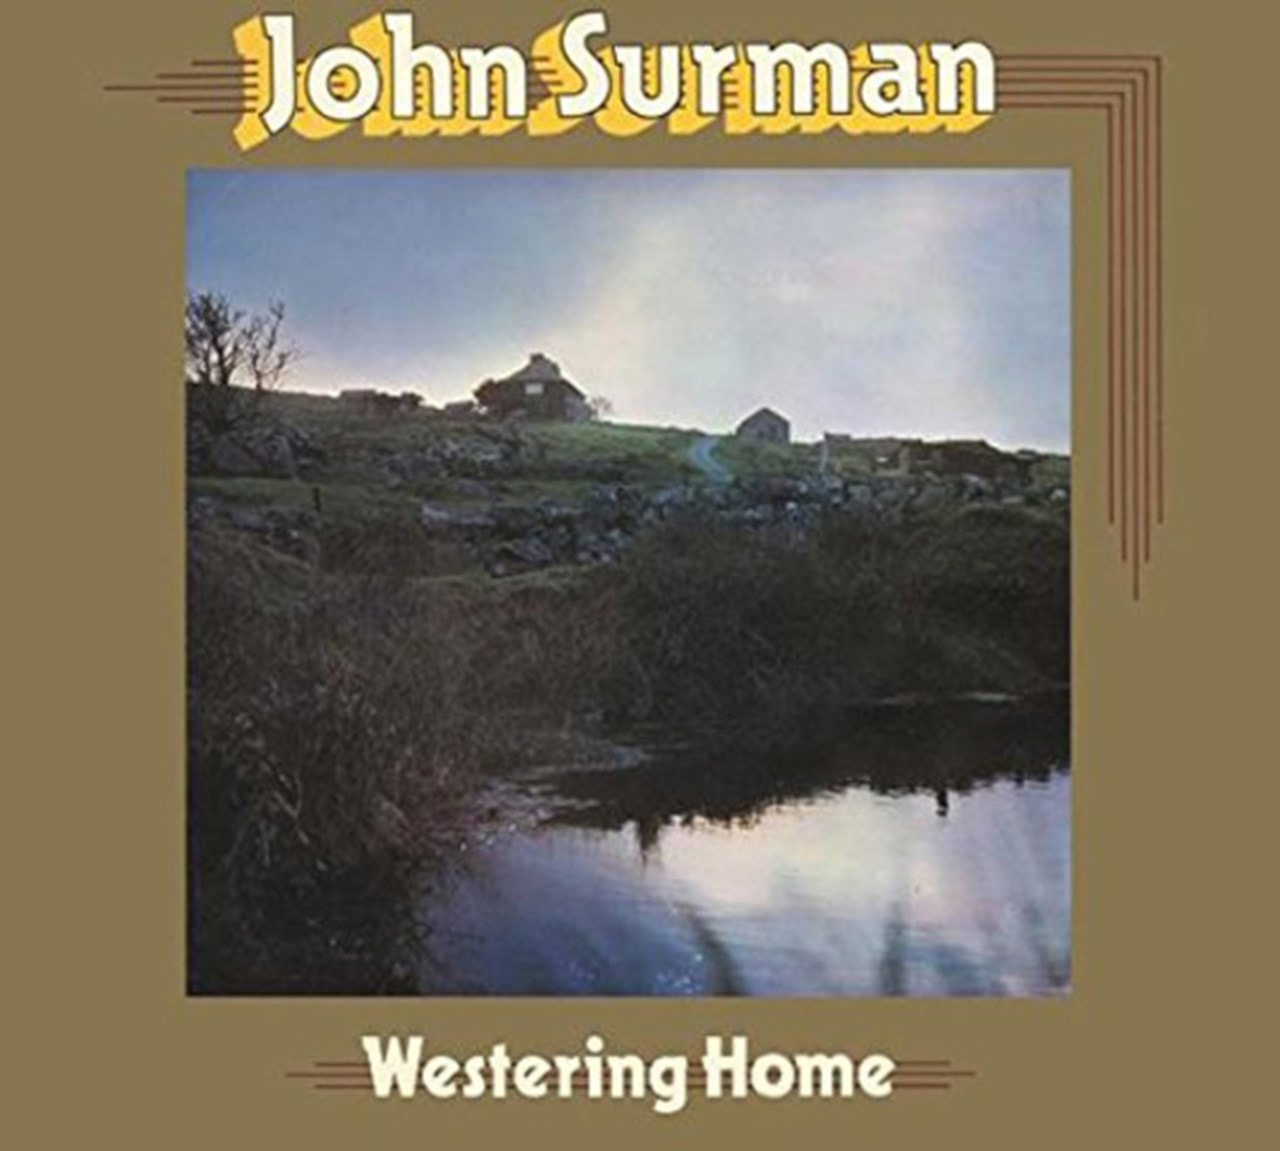 Westering Home - 1